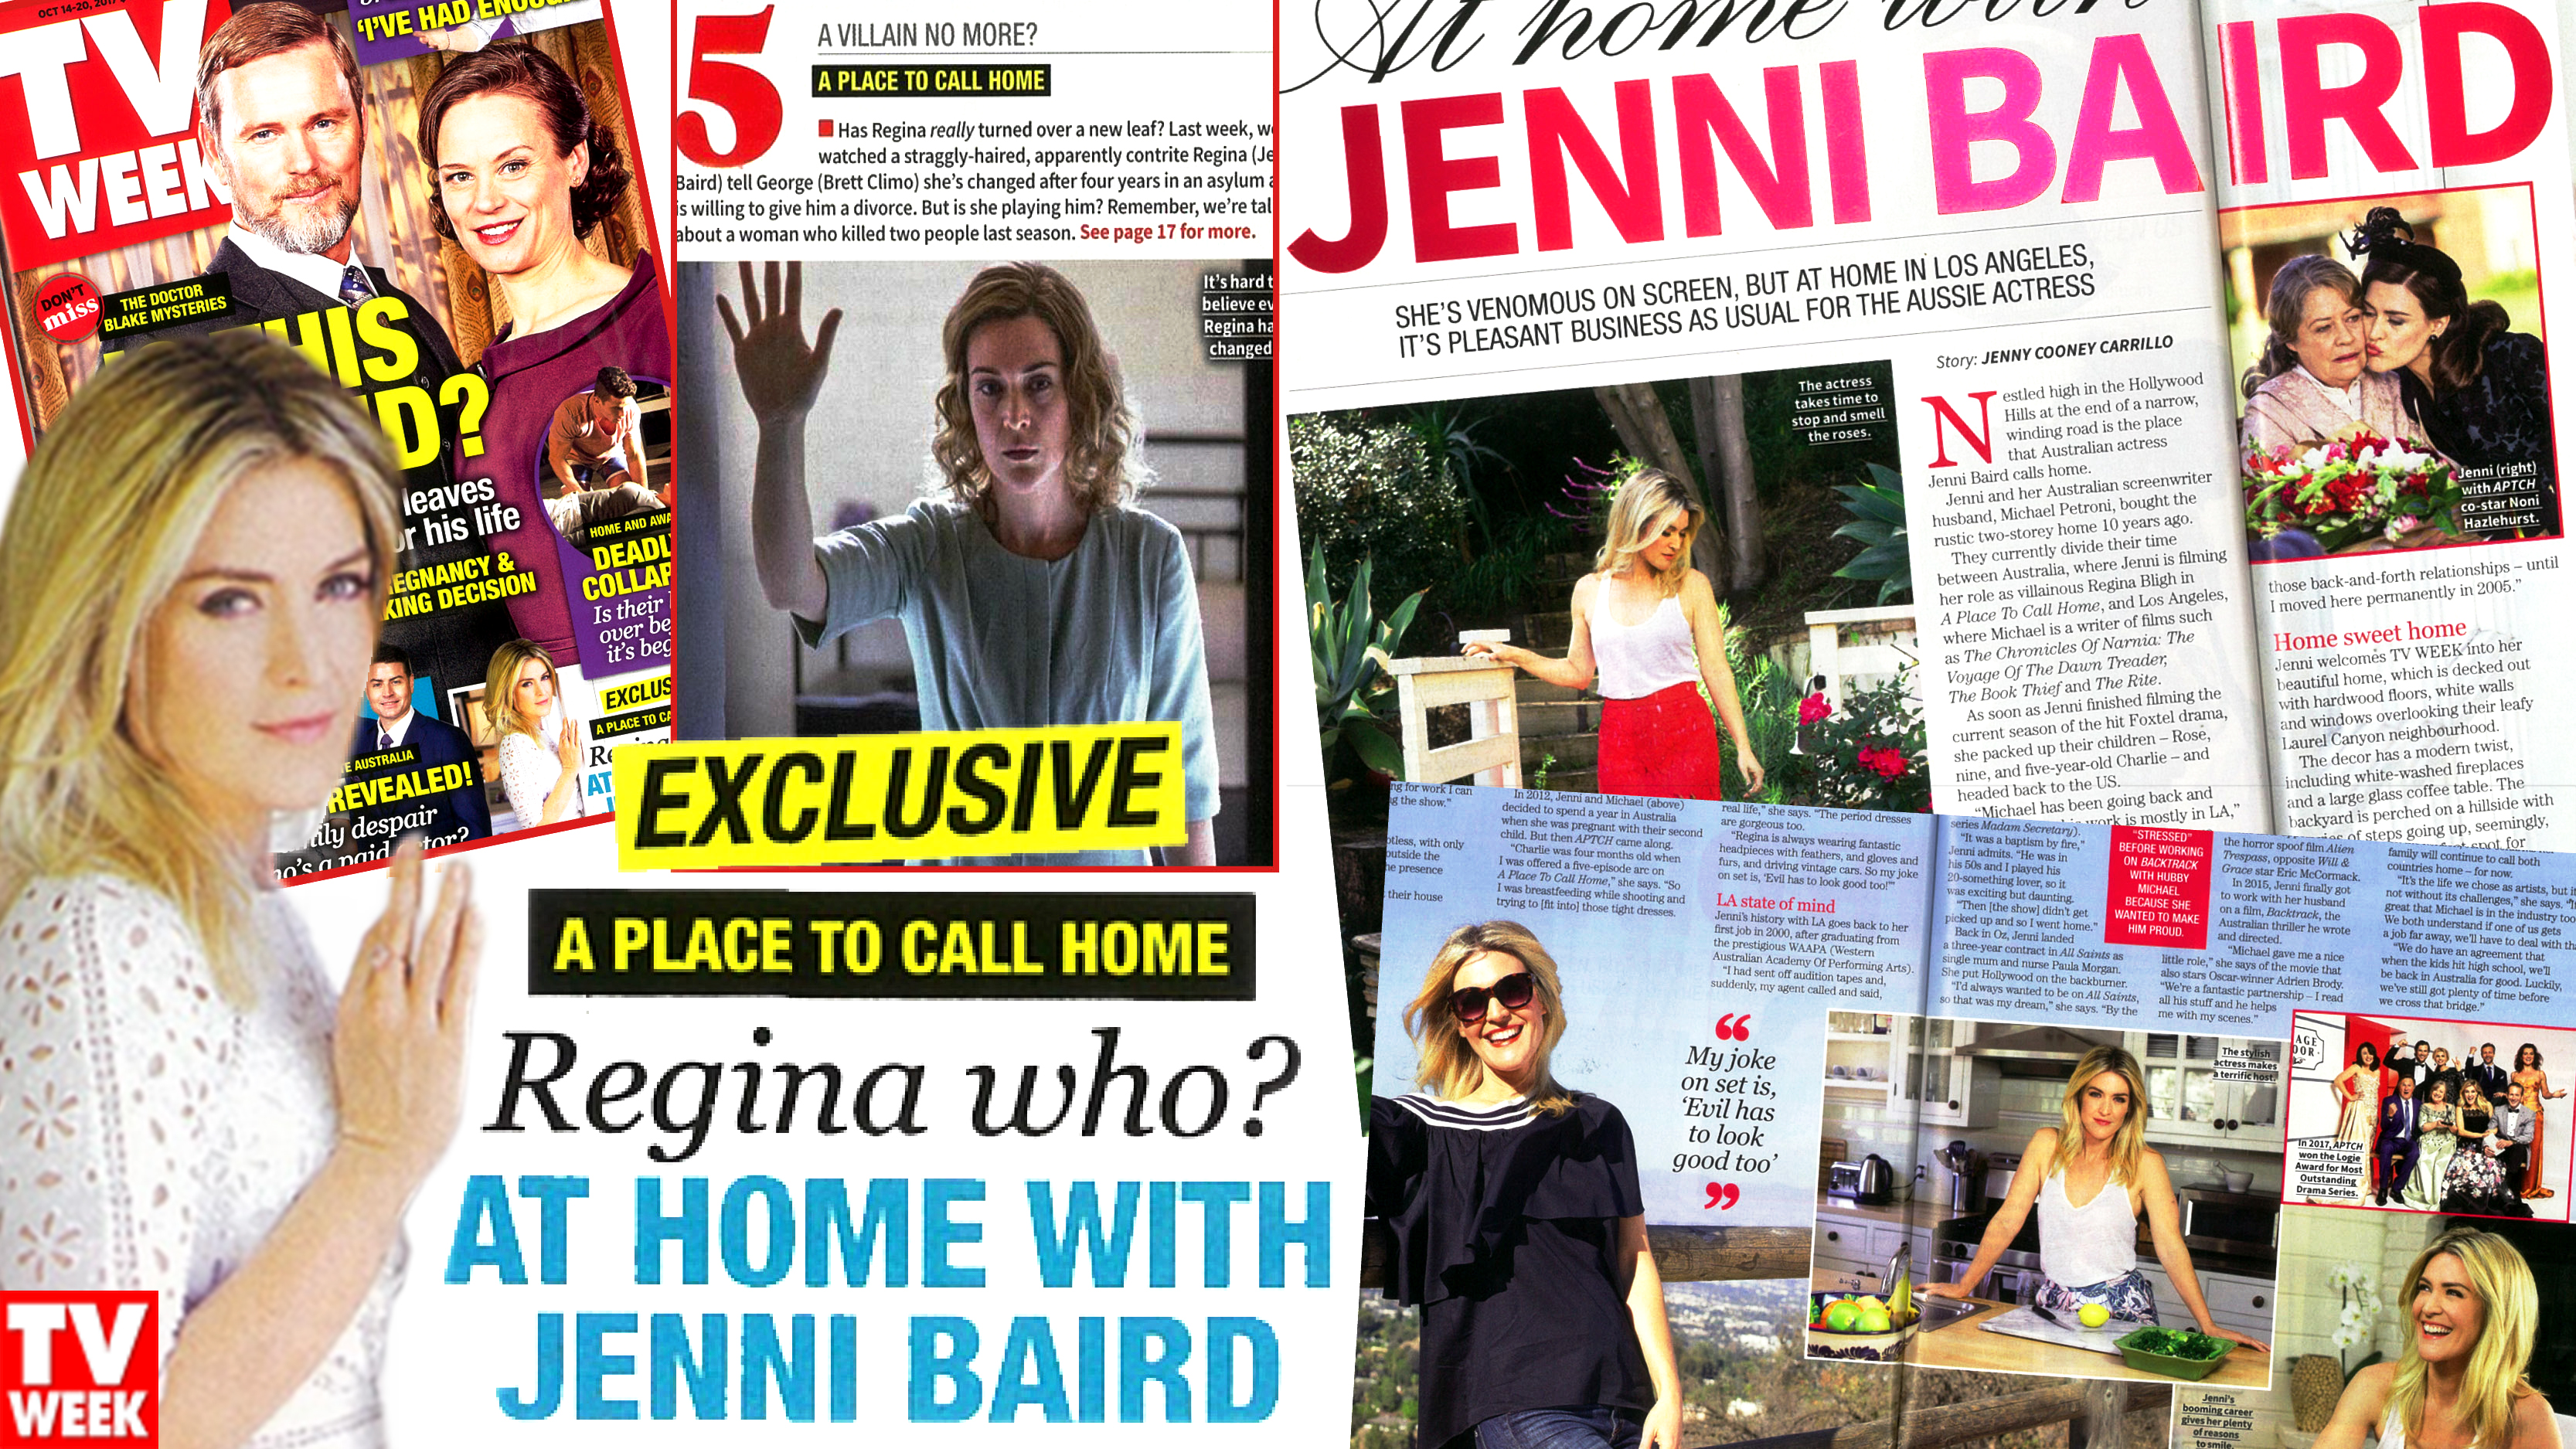 At Home With Jenni Baird